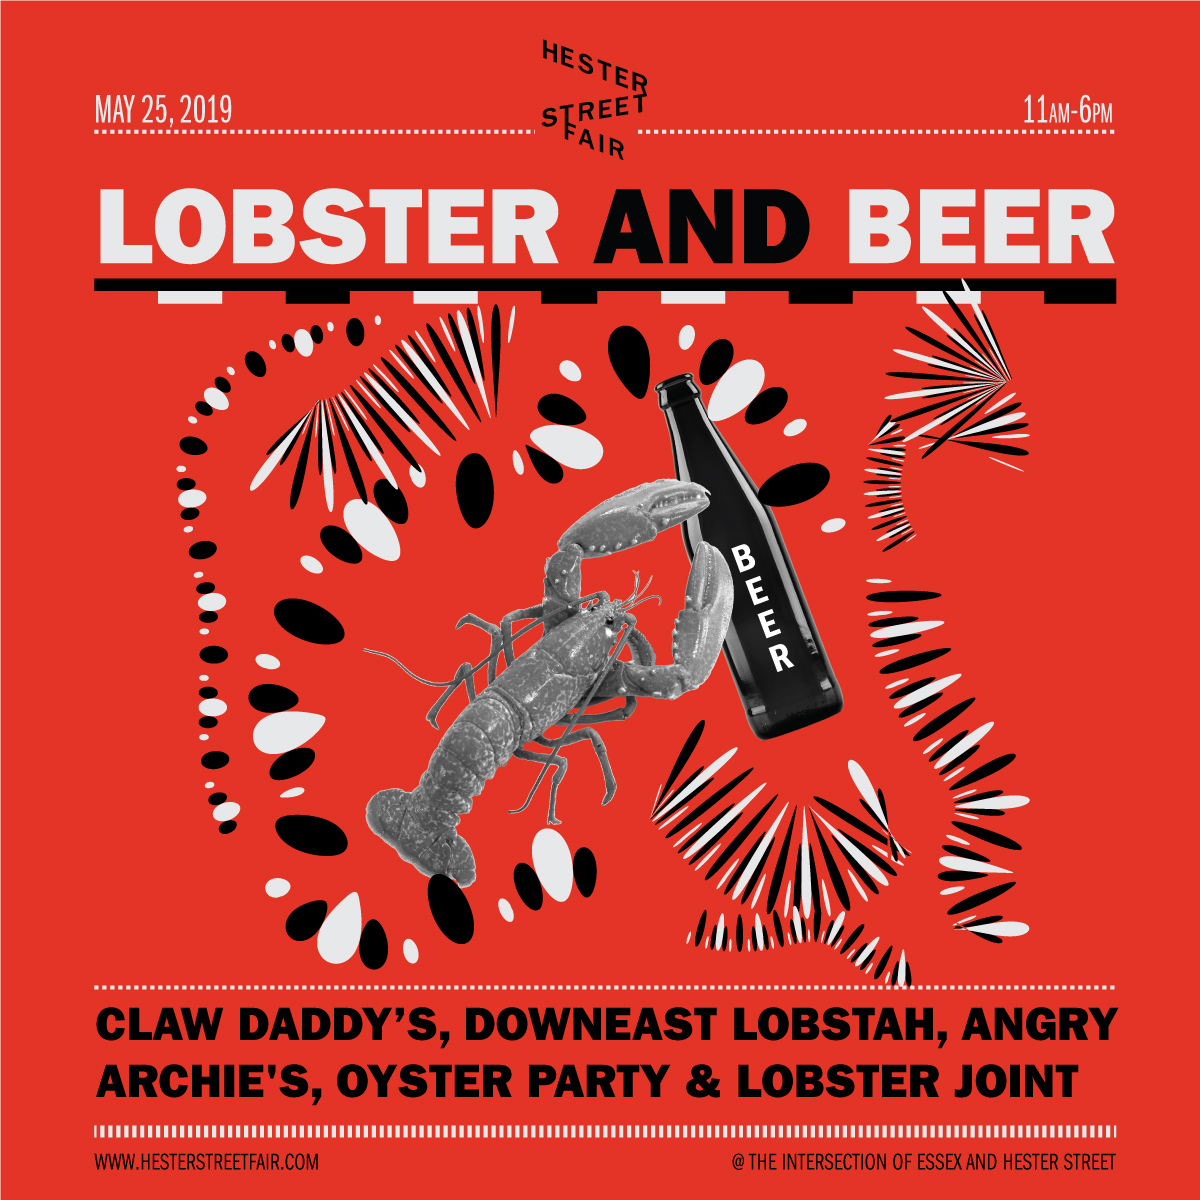 19HSF400-0525-Lobster-sq.jpg